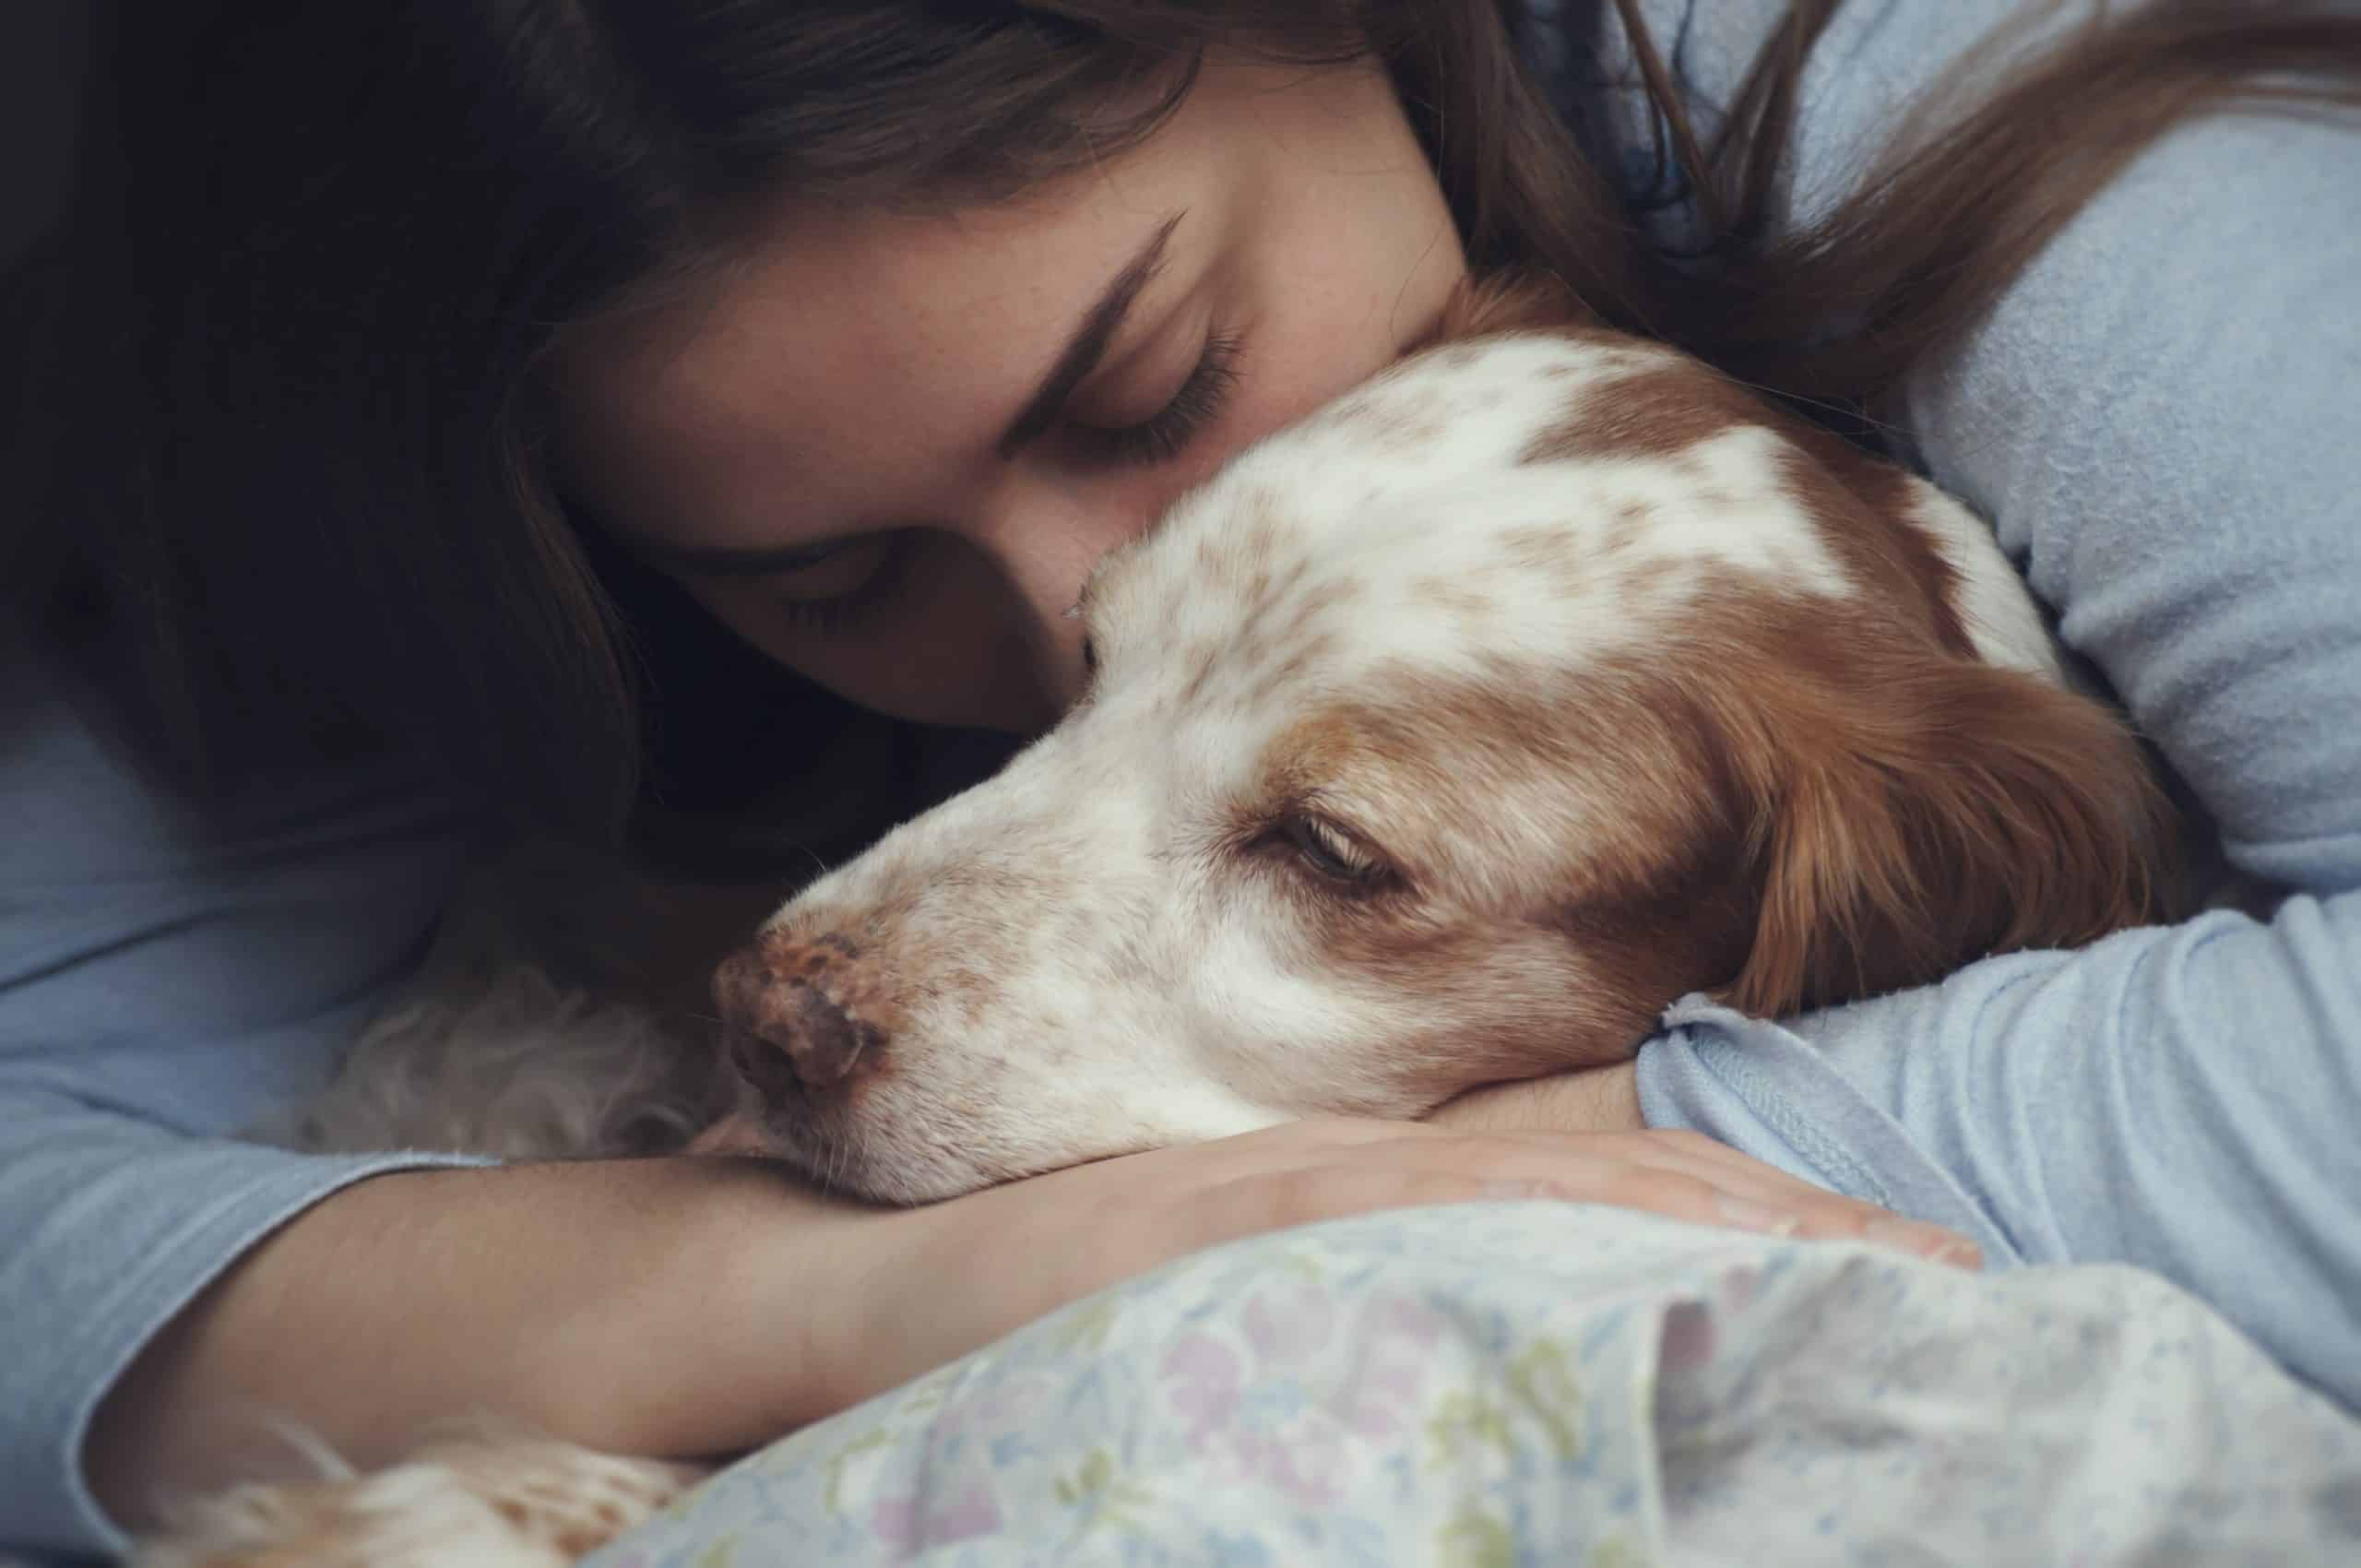 Woman cuddles springer spaniel. The loss of your dog is heartbreaking. Take the time to honor your dog, grieve, and seek support as you cope with your loss.